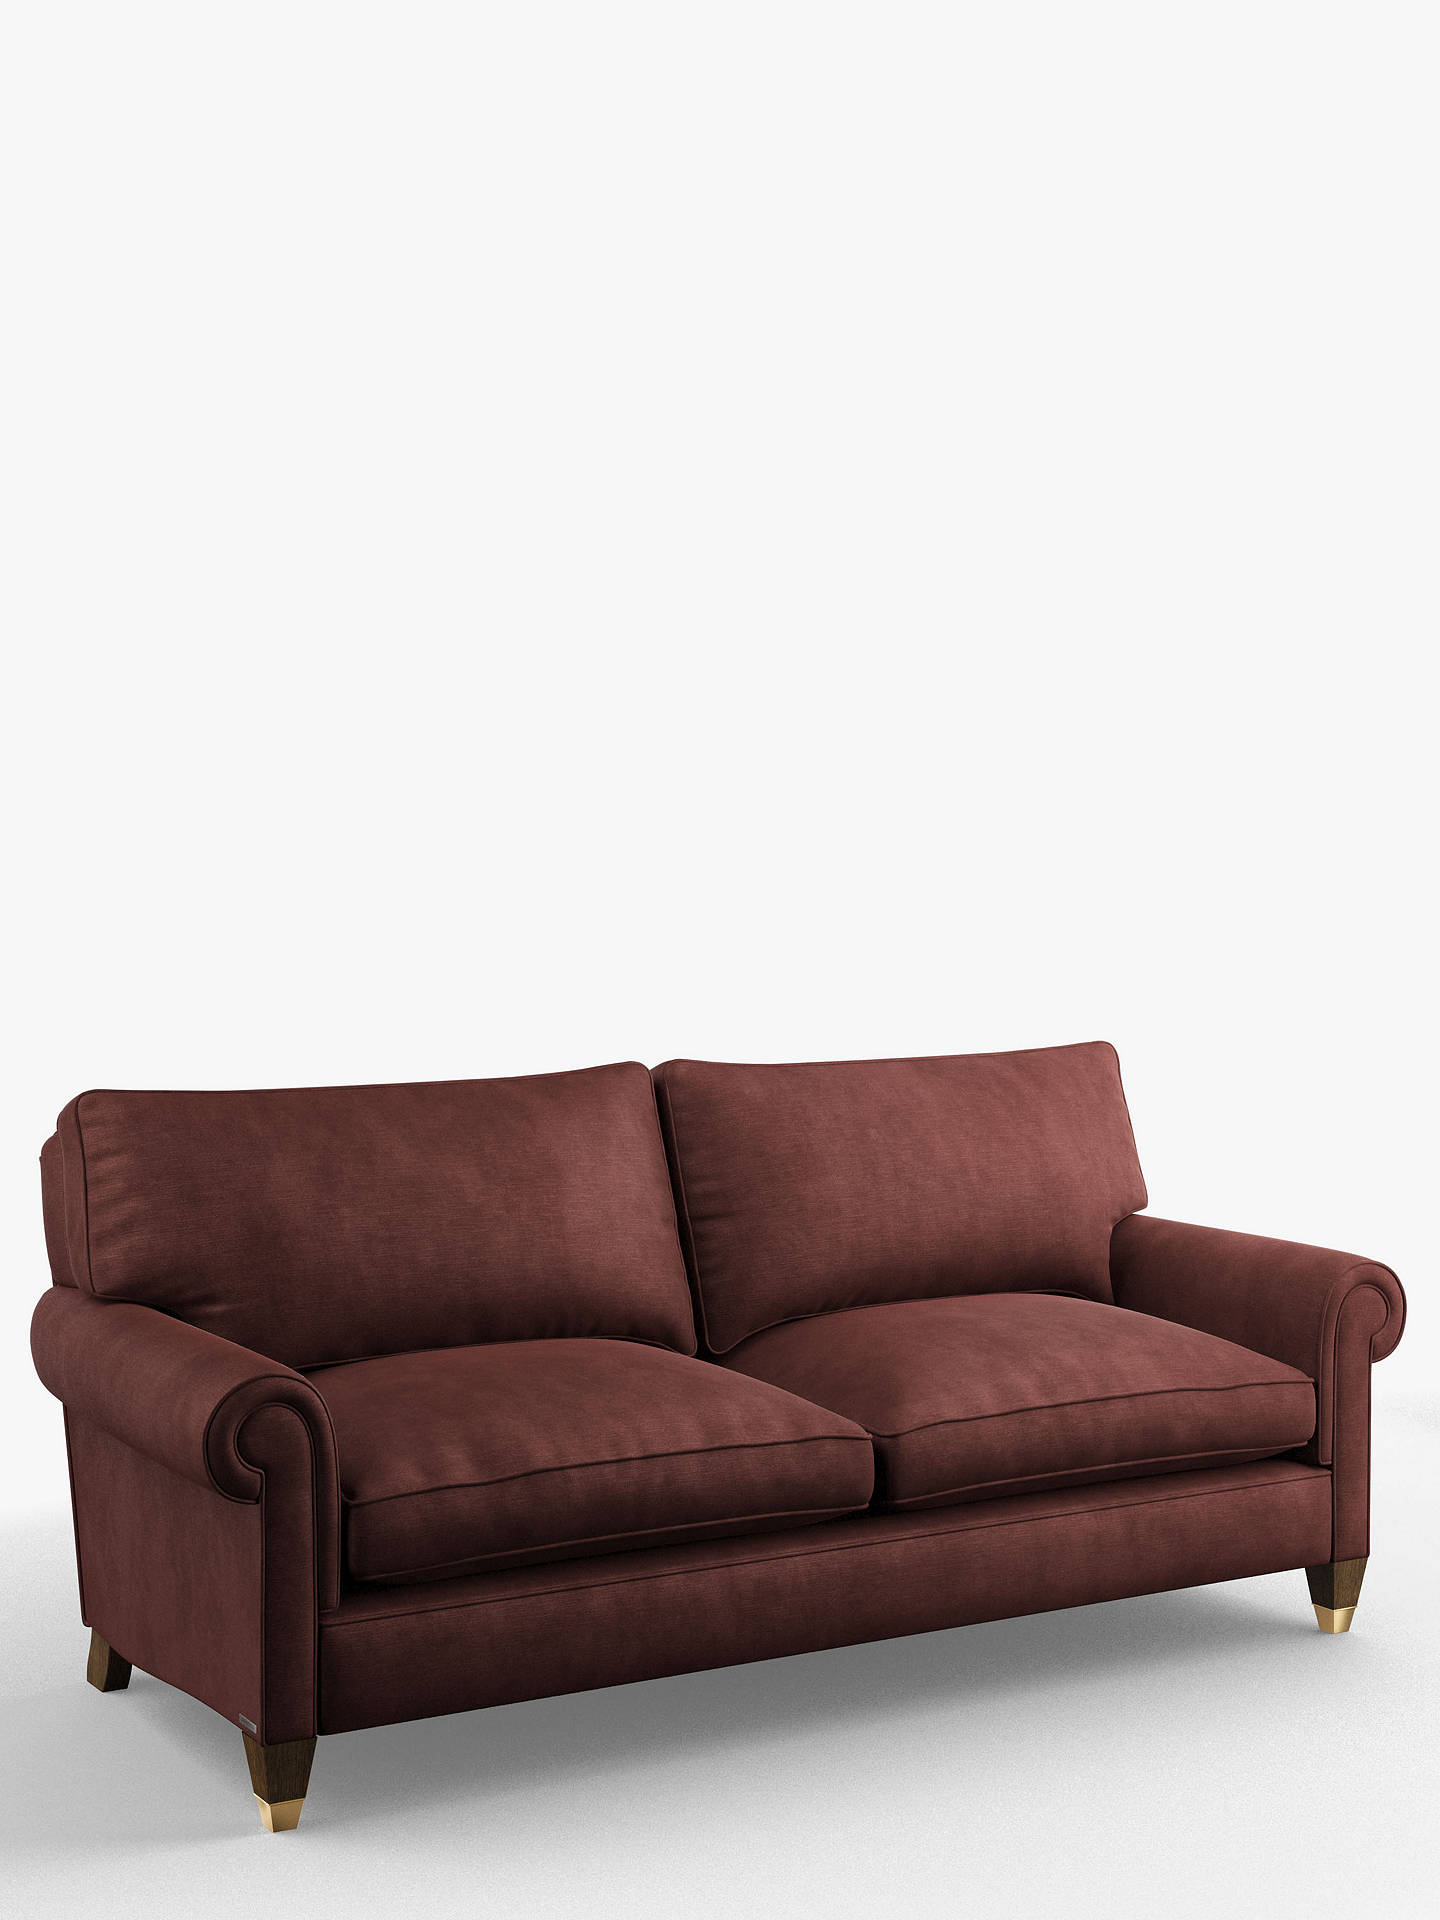 Buy Duresta Clarke Grand 4 Seater Sofa, Tate Velvet Oxblood Online at johnlewis.com